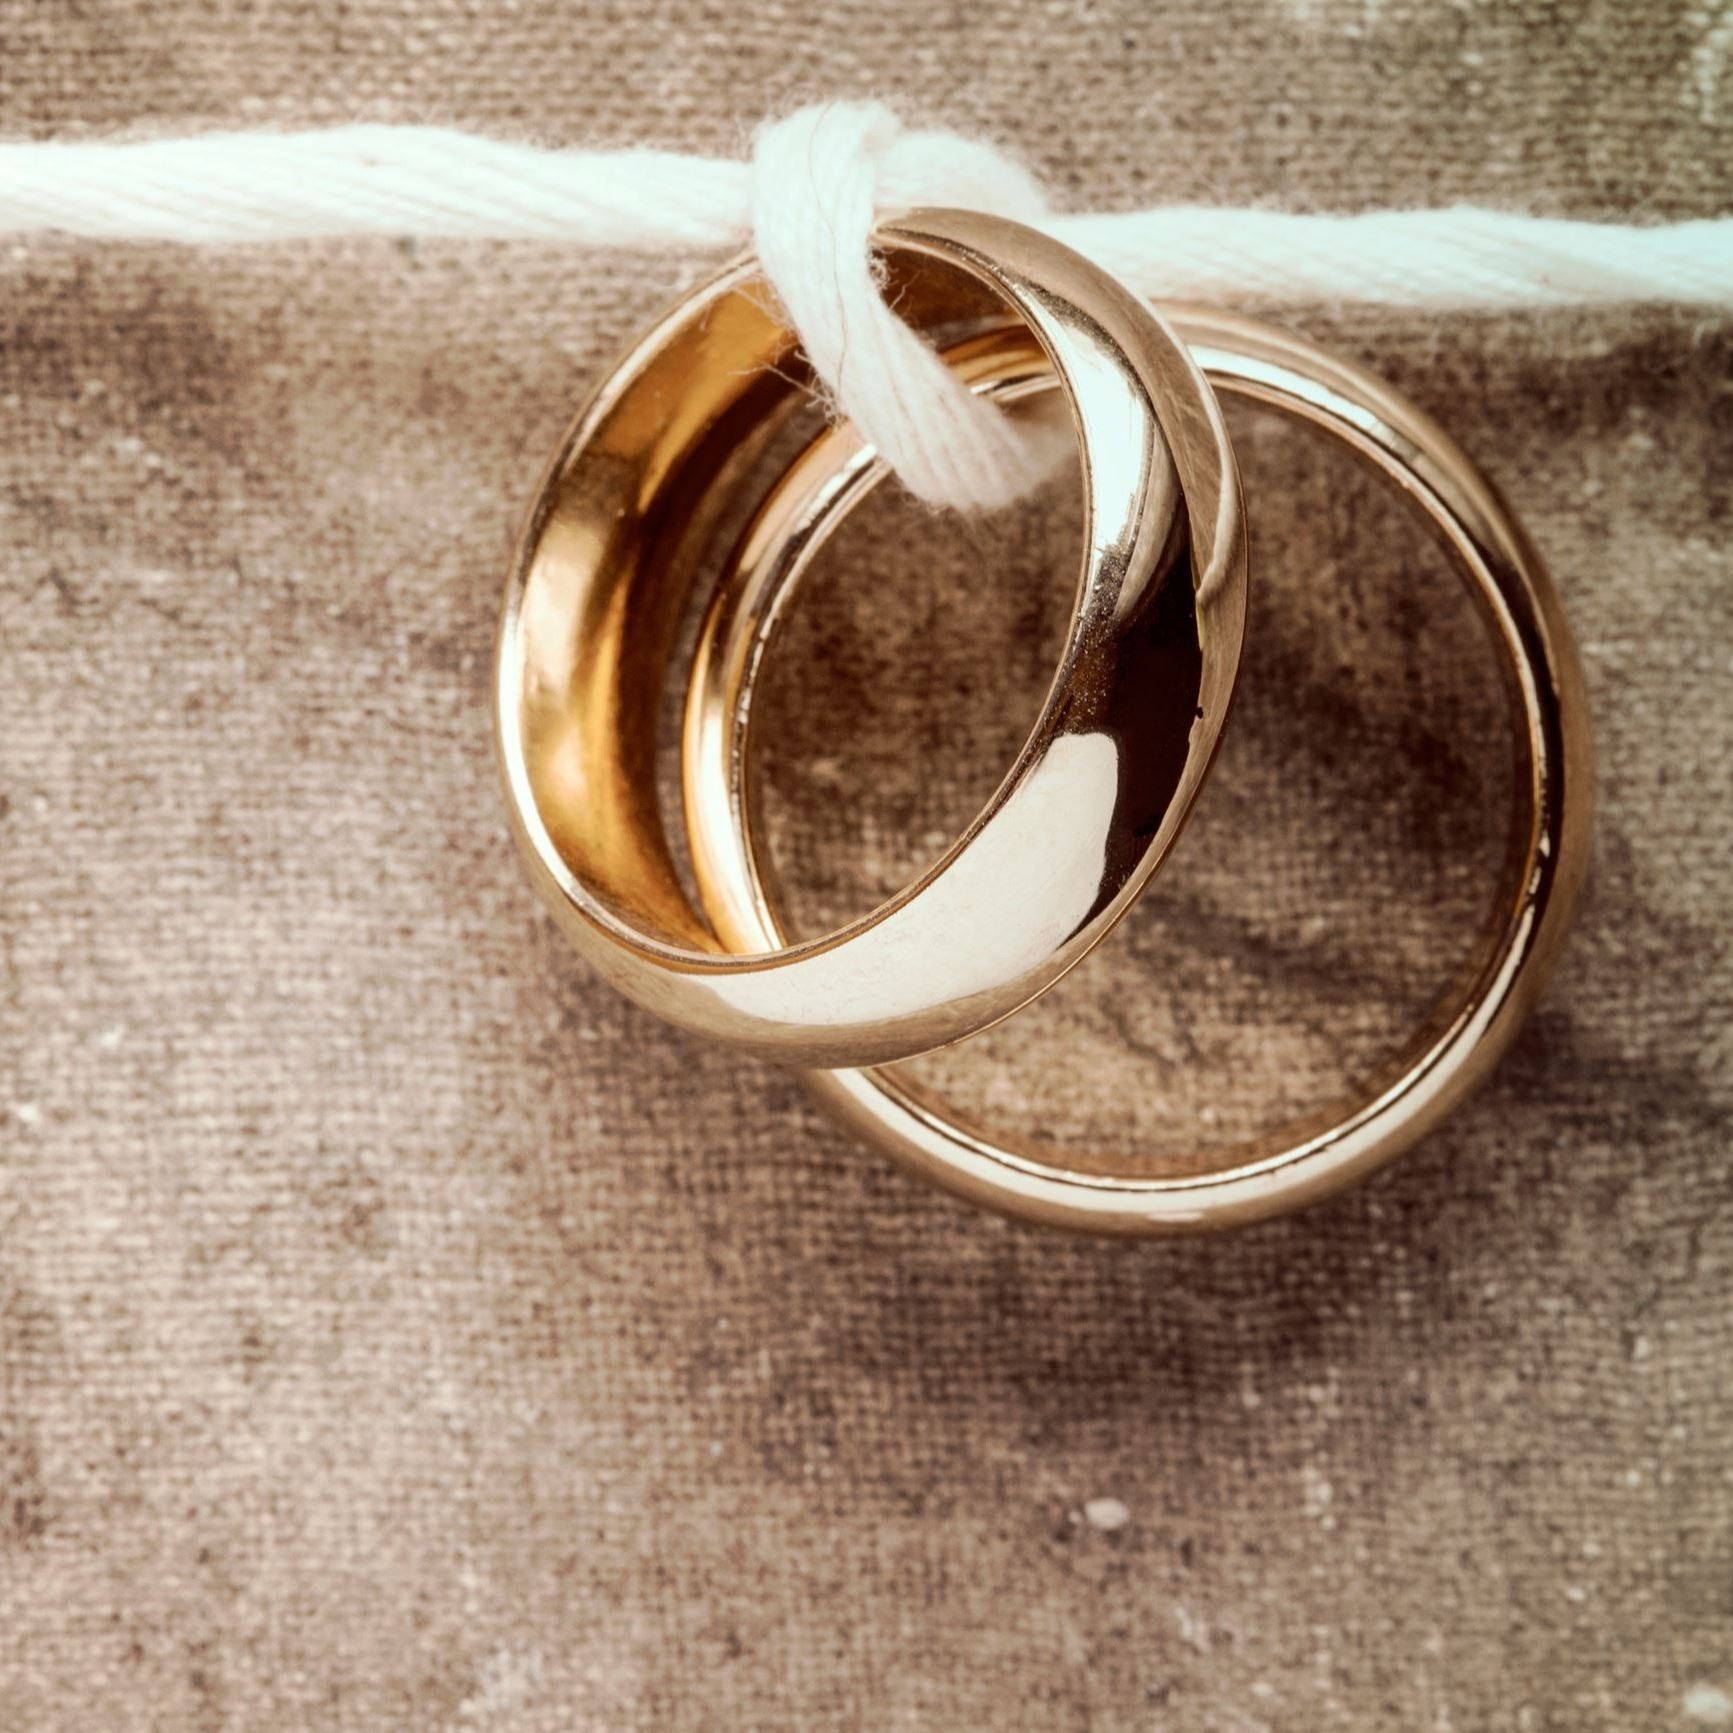 Two wedding rings on string.